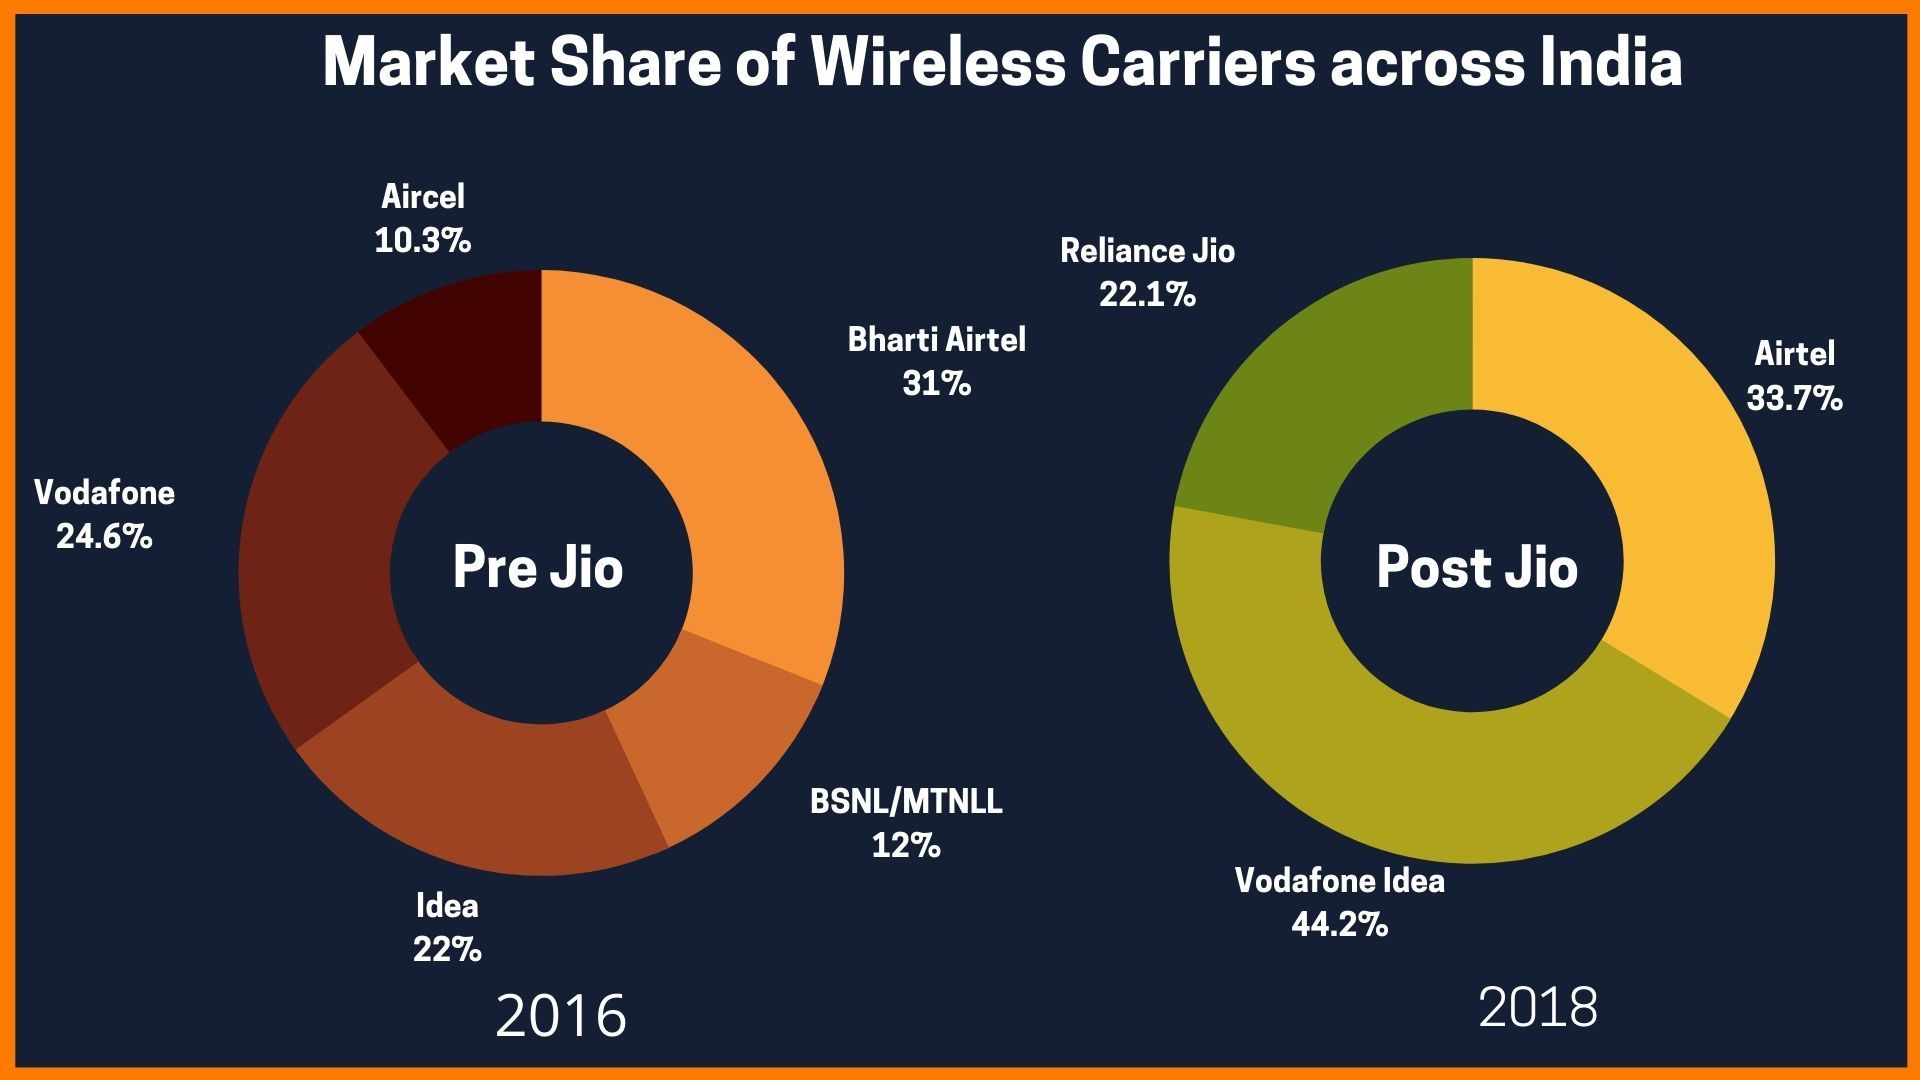 Market Share of Wireless Carriers in India